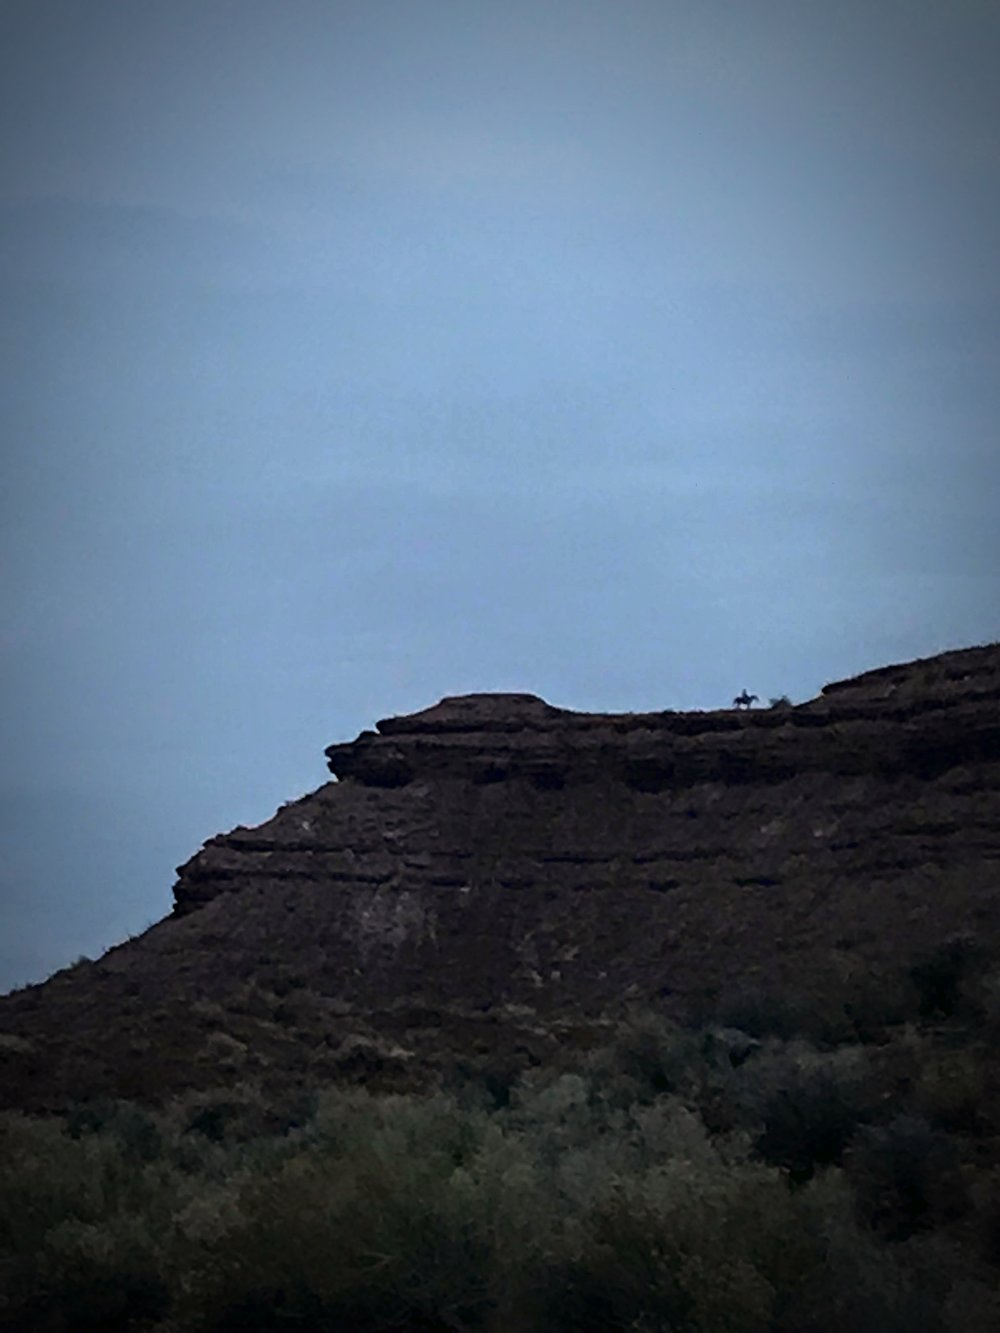 I spotted this rider high on a butte above the road. I felt like I was running through a western movie.